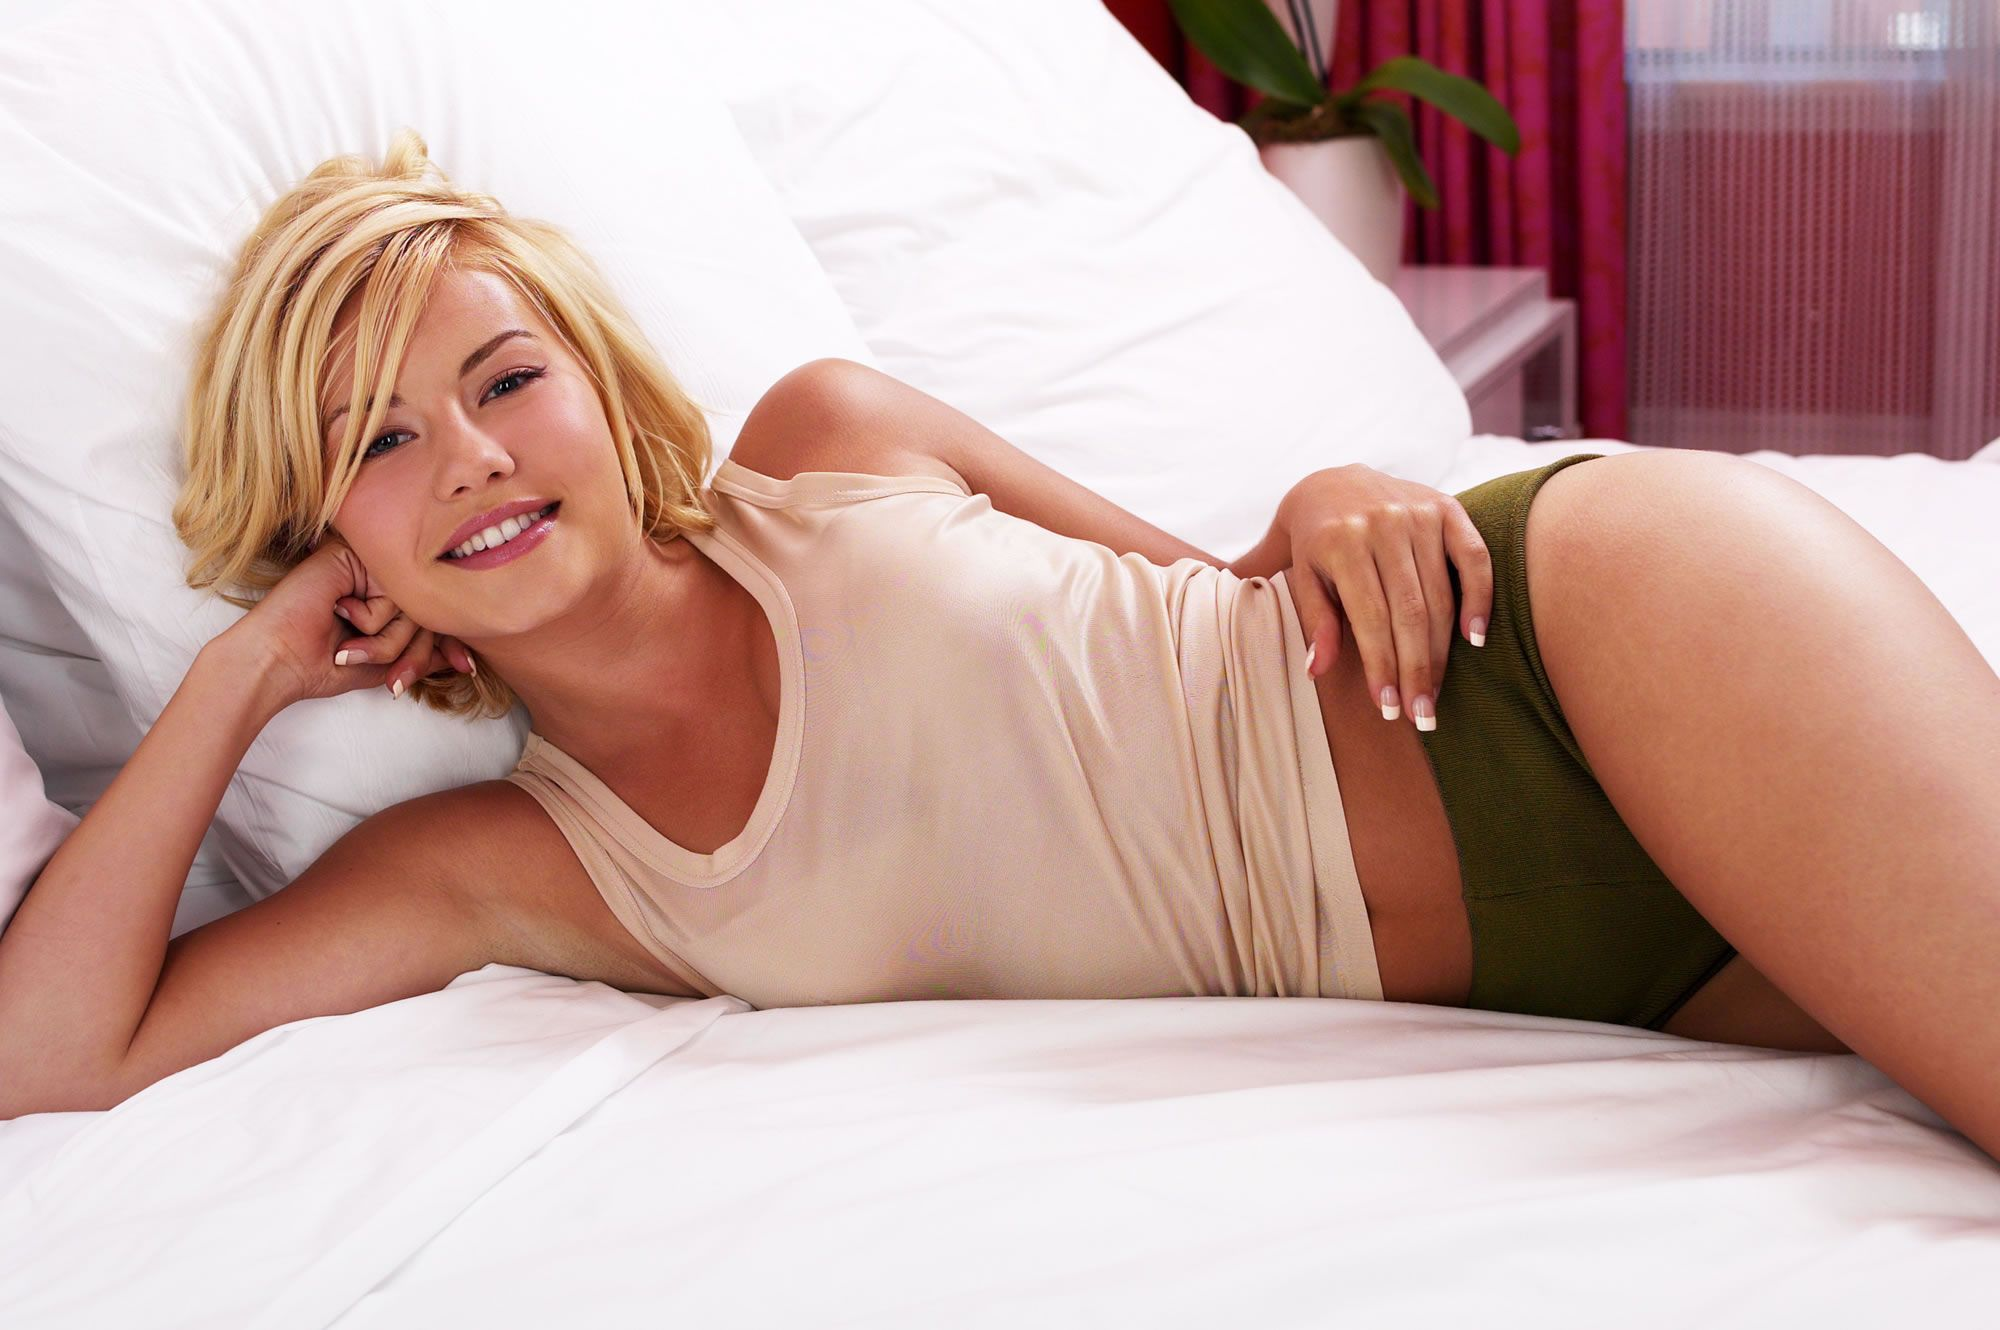 Elisha cuthbert hot in socks, pink world nude youtube sex fuck